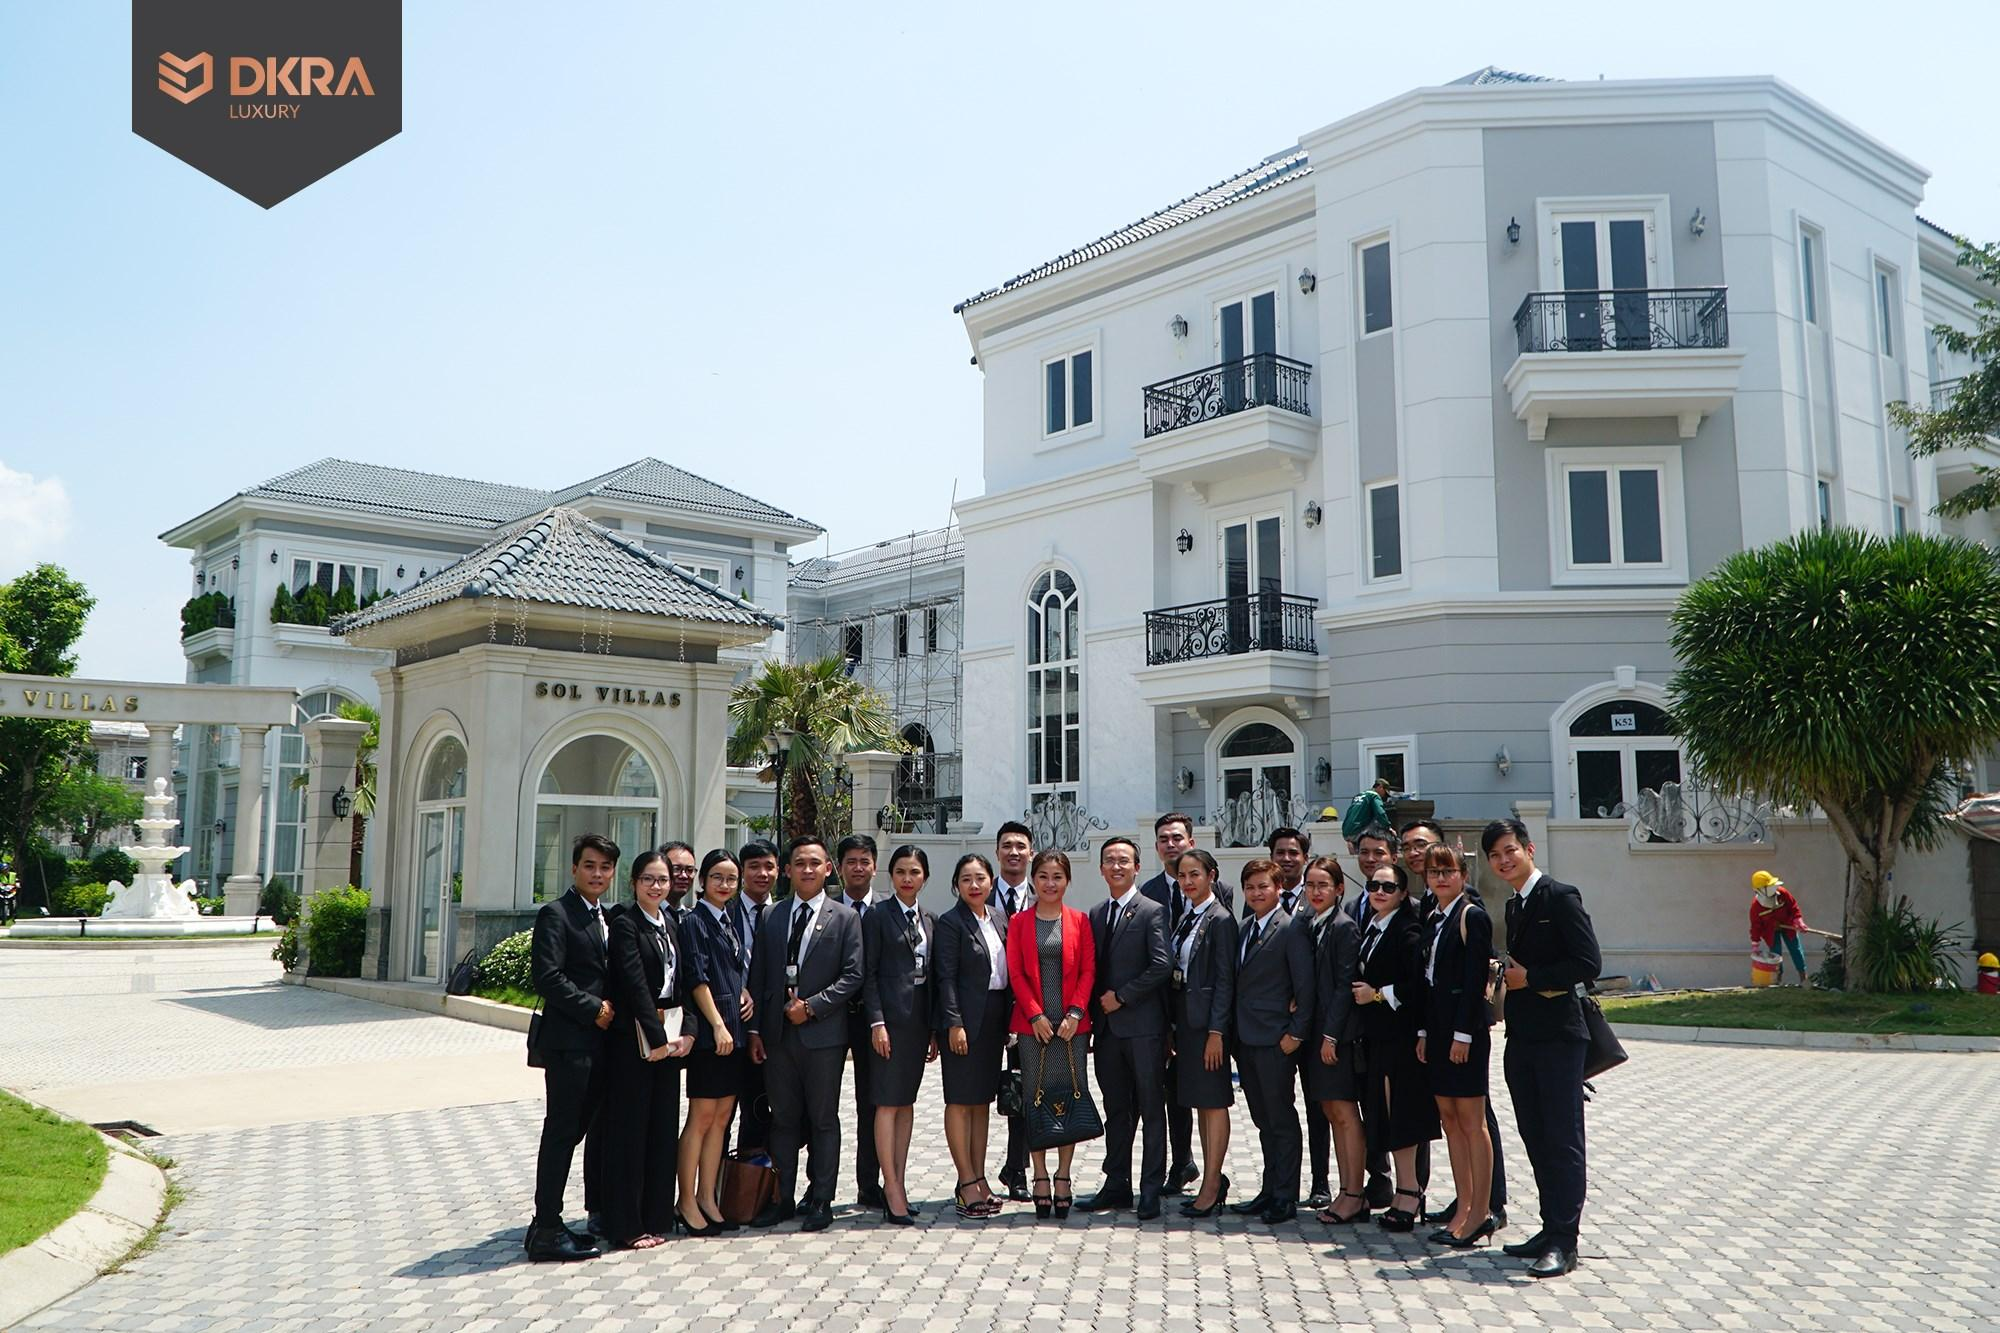 DKRA LUXURY JOINED THE TRAINING PROGRAM OF THE HIGH-CLASS SOL VILLAS COMPOUND VILLA